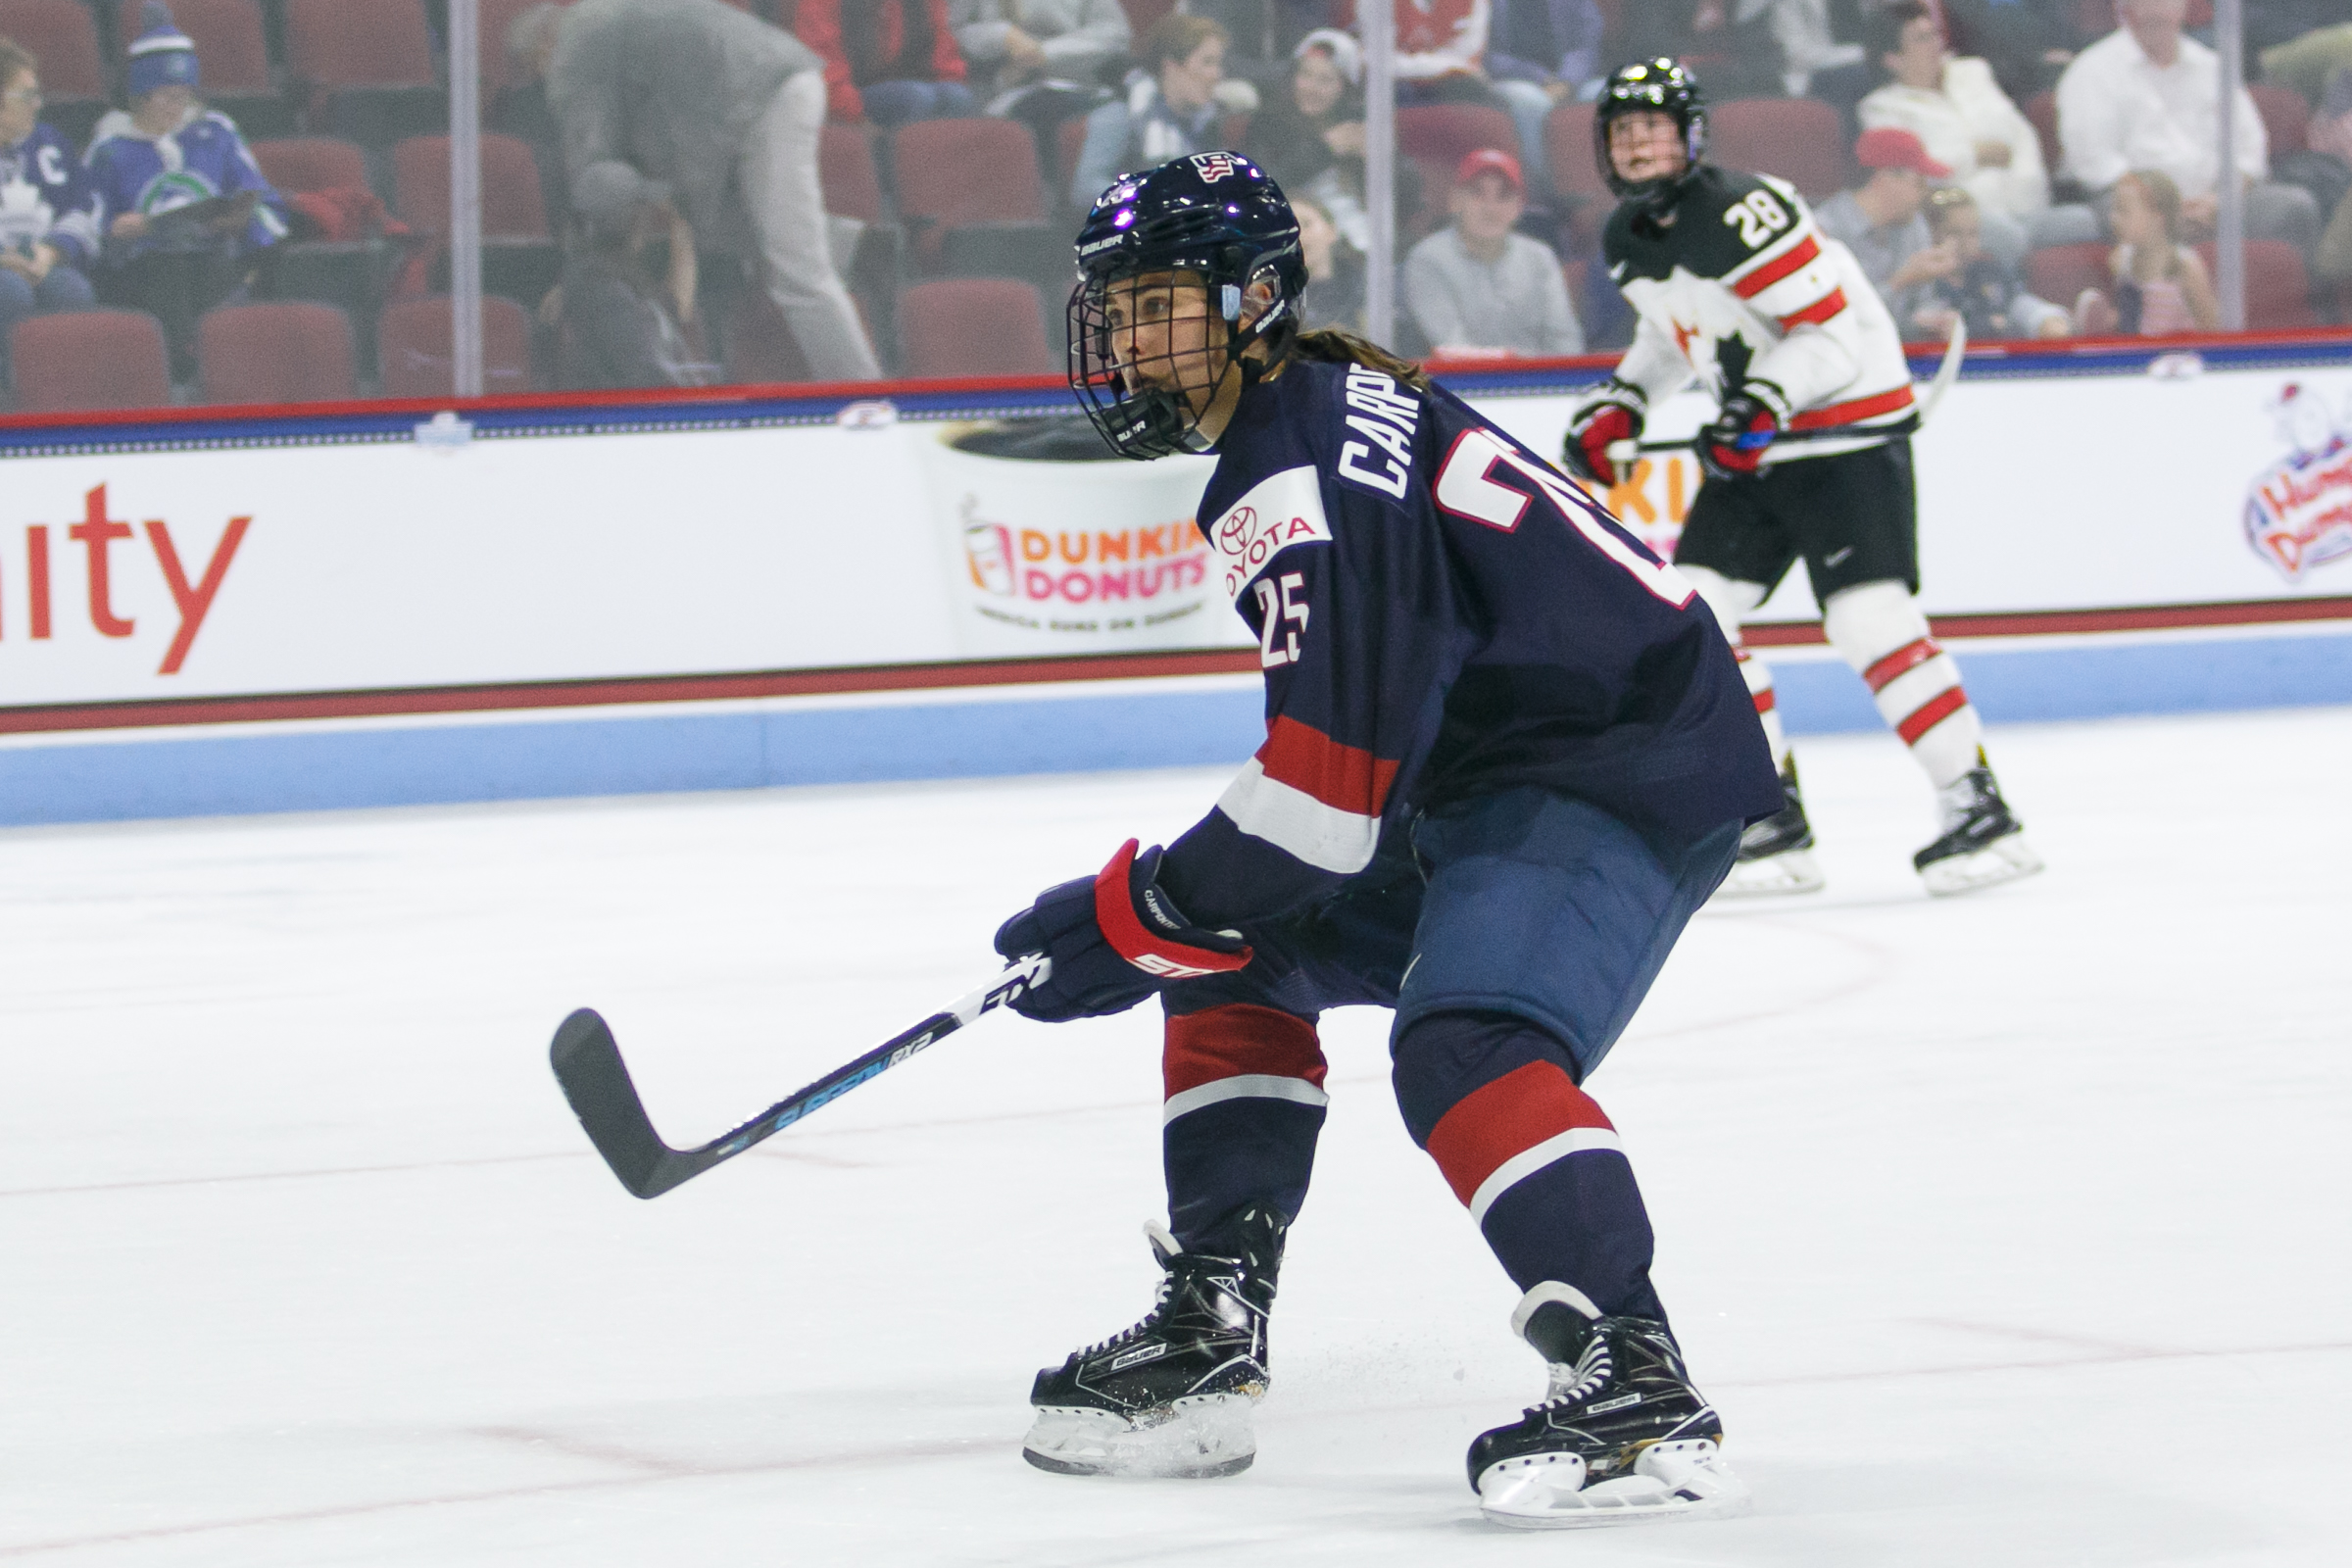 Alex Carpenter playing for Team USA in 2017